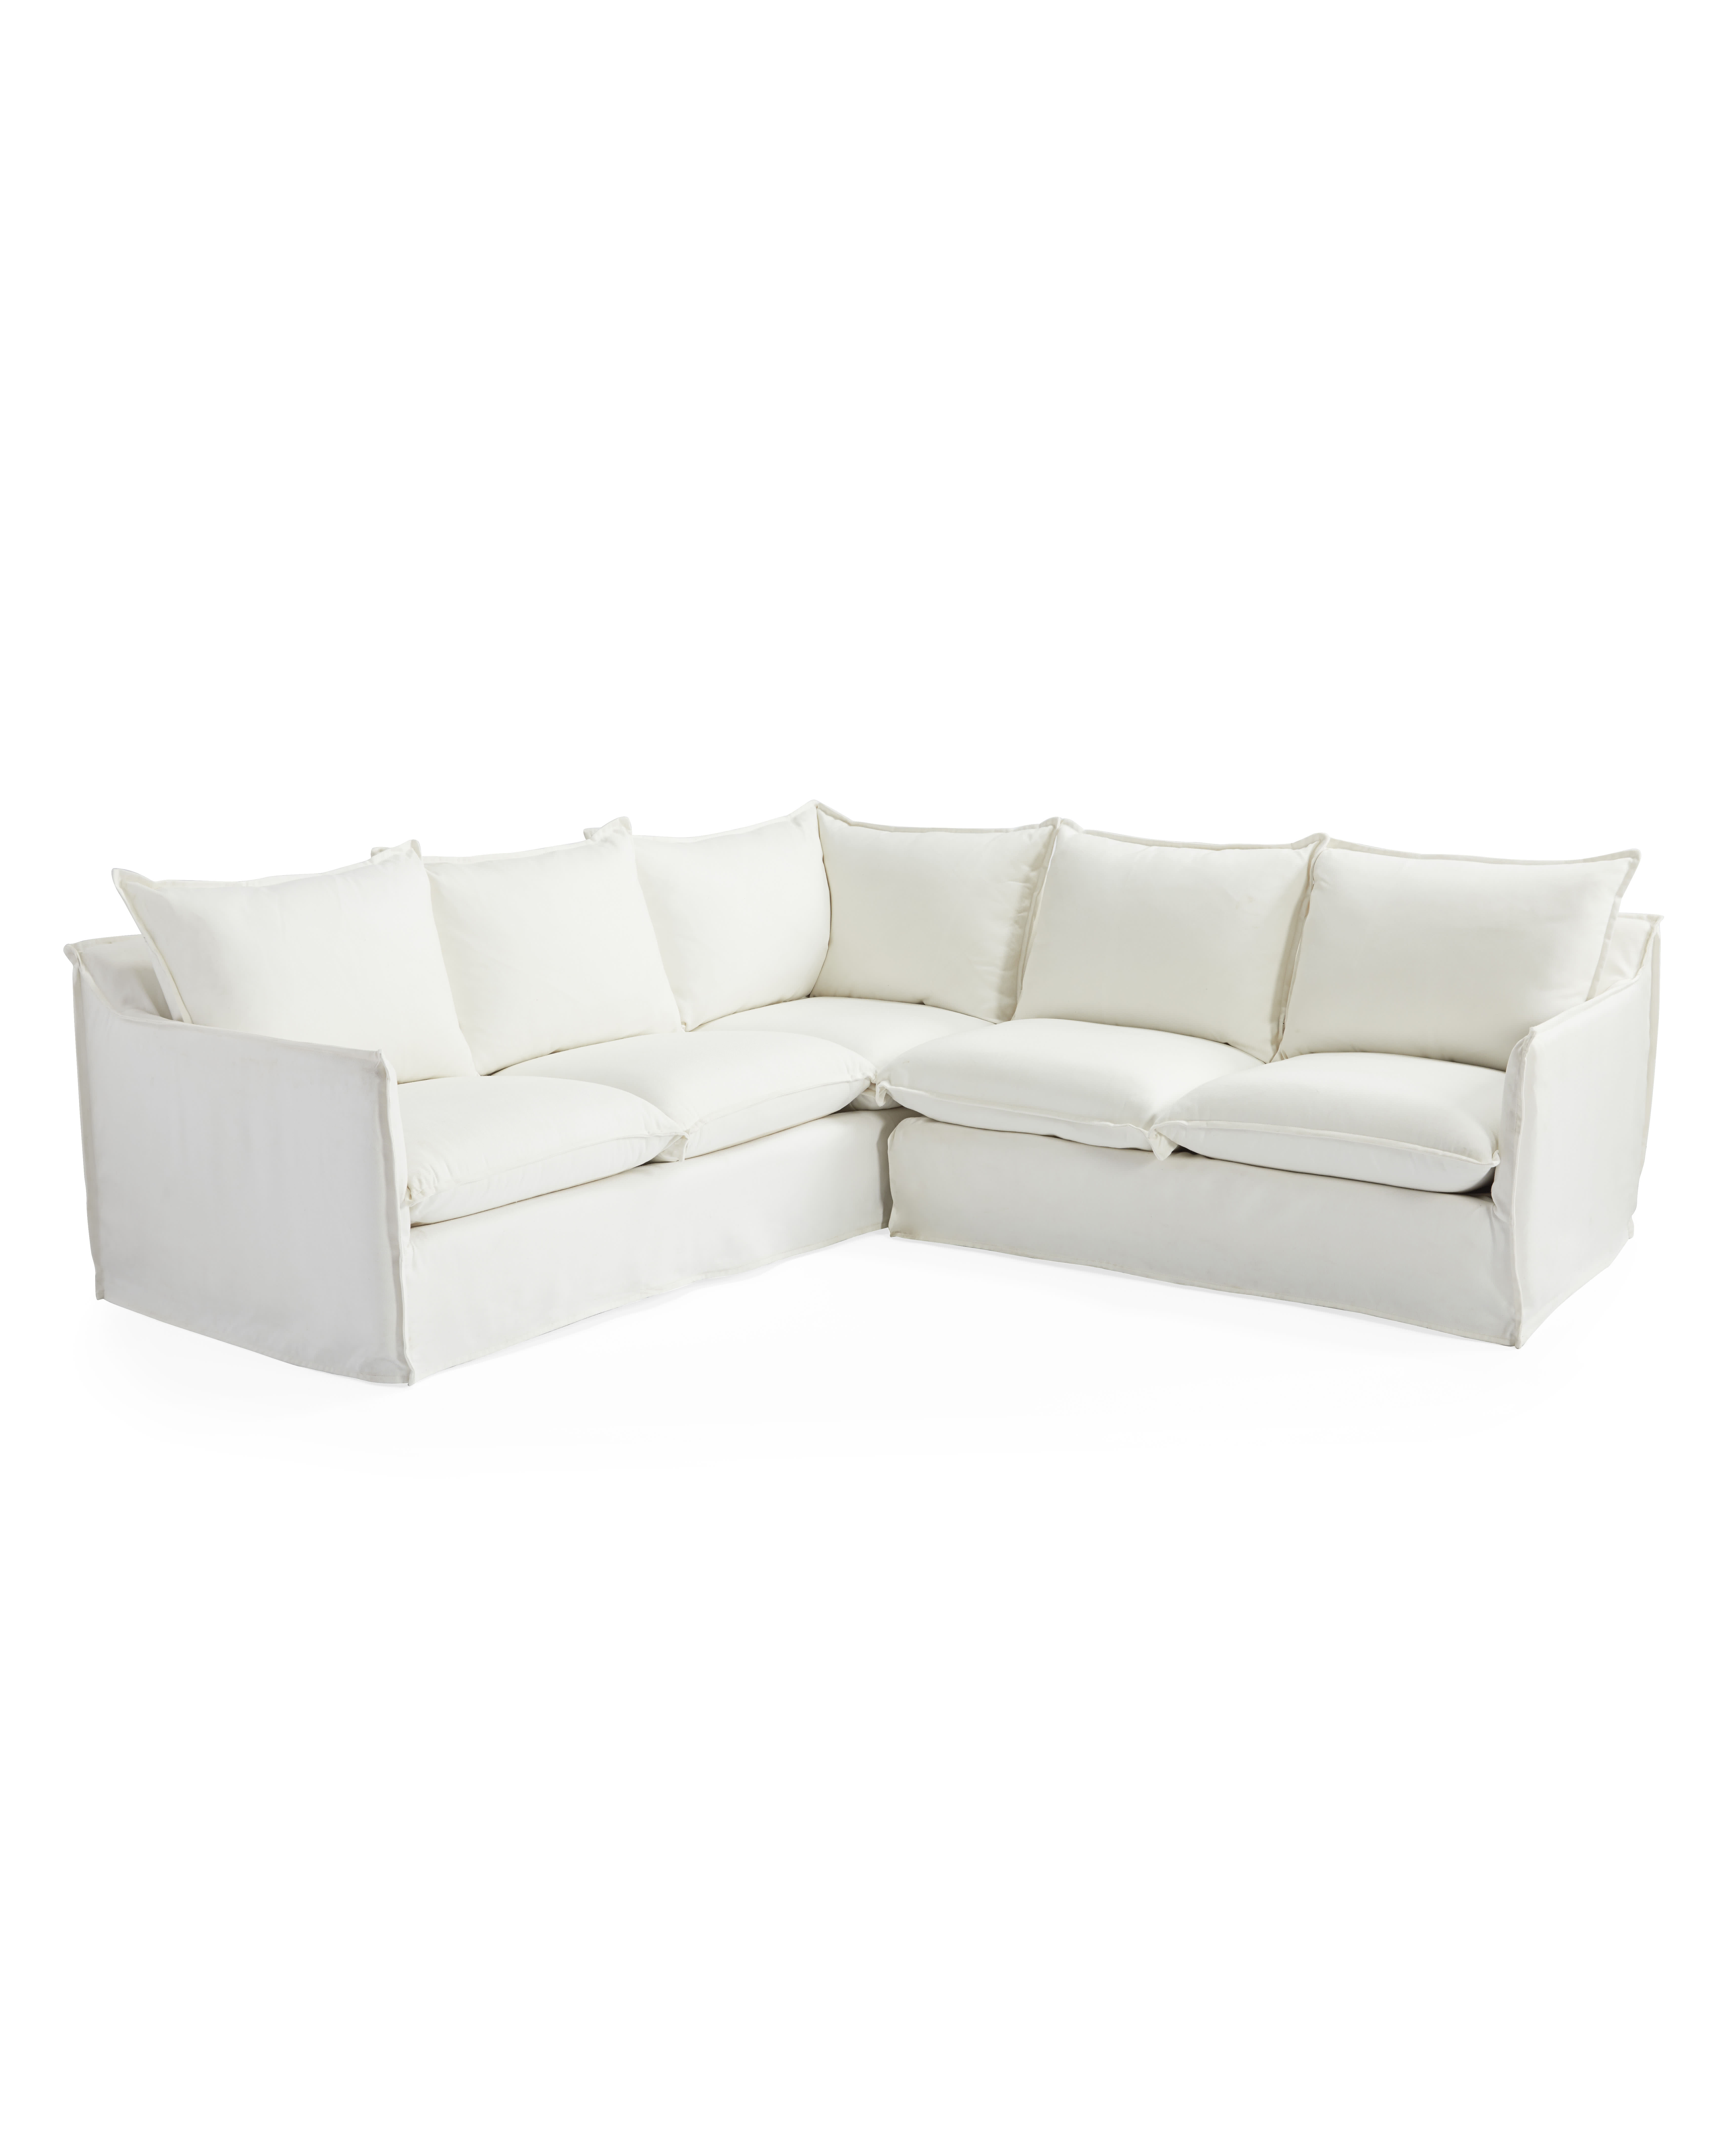 Sundial Outdoor Left-Facing Sectional,